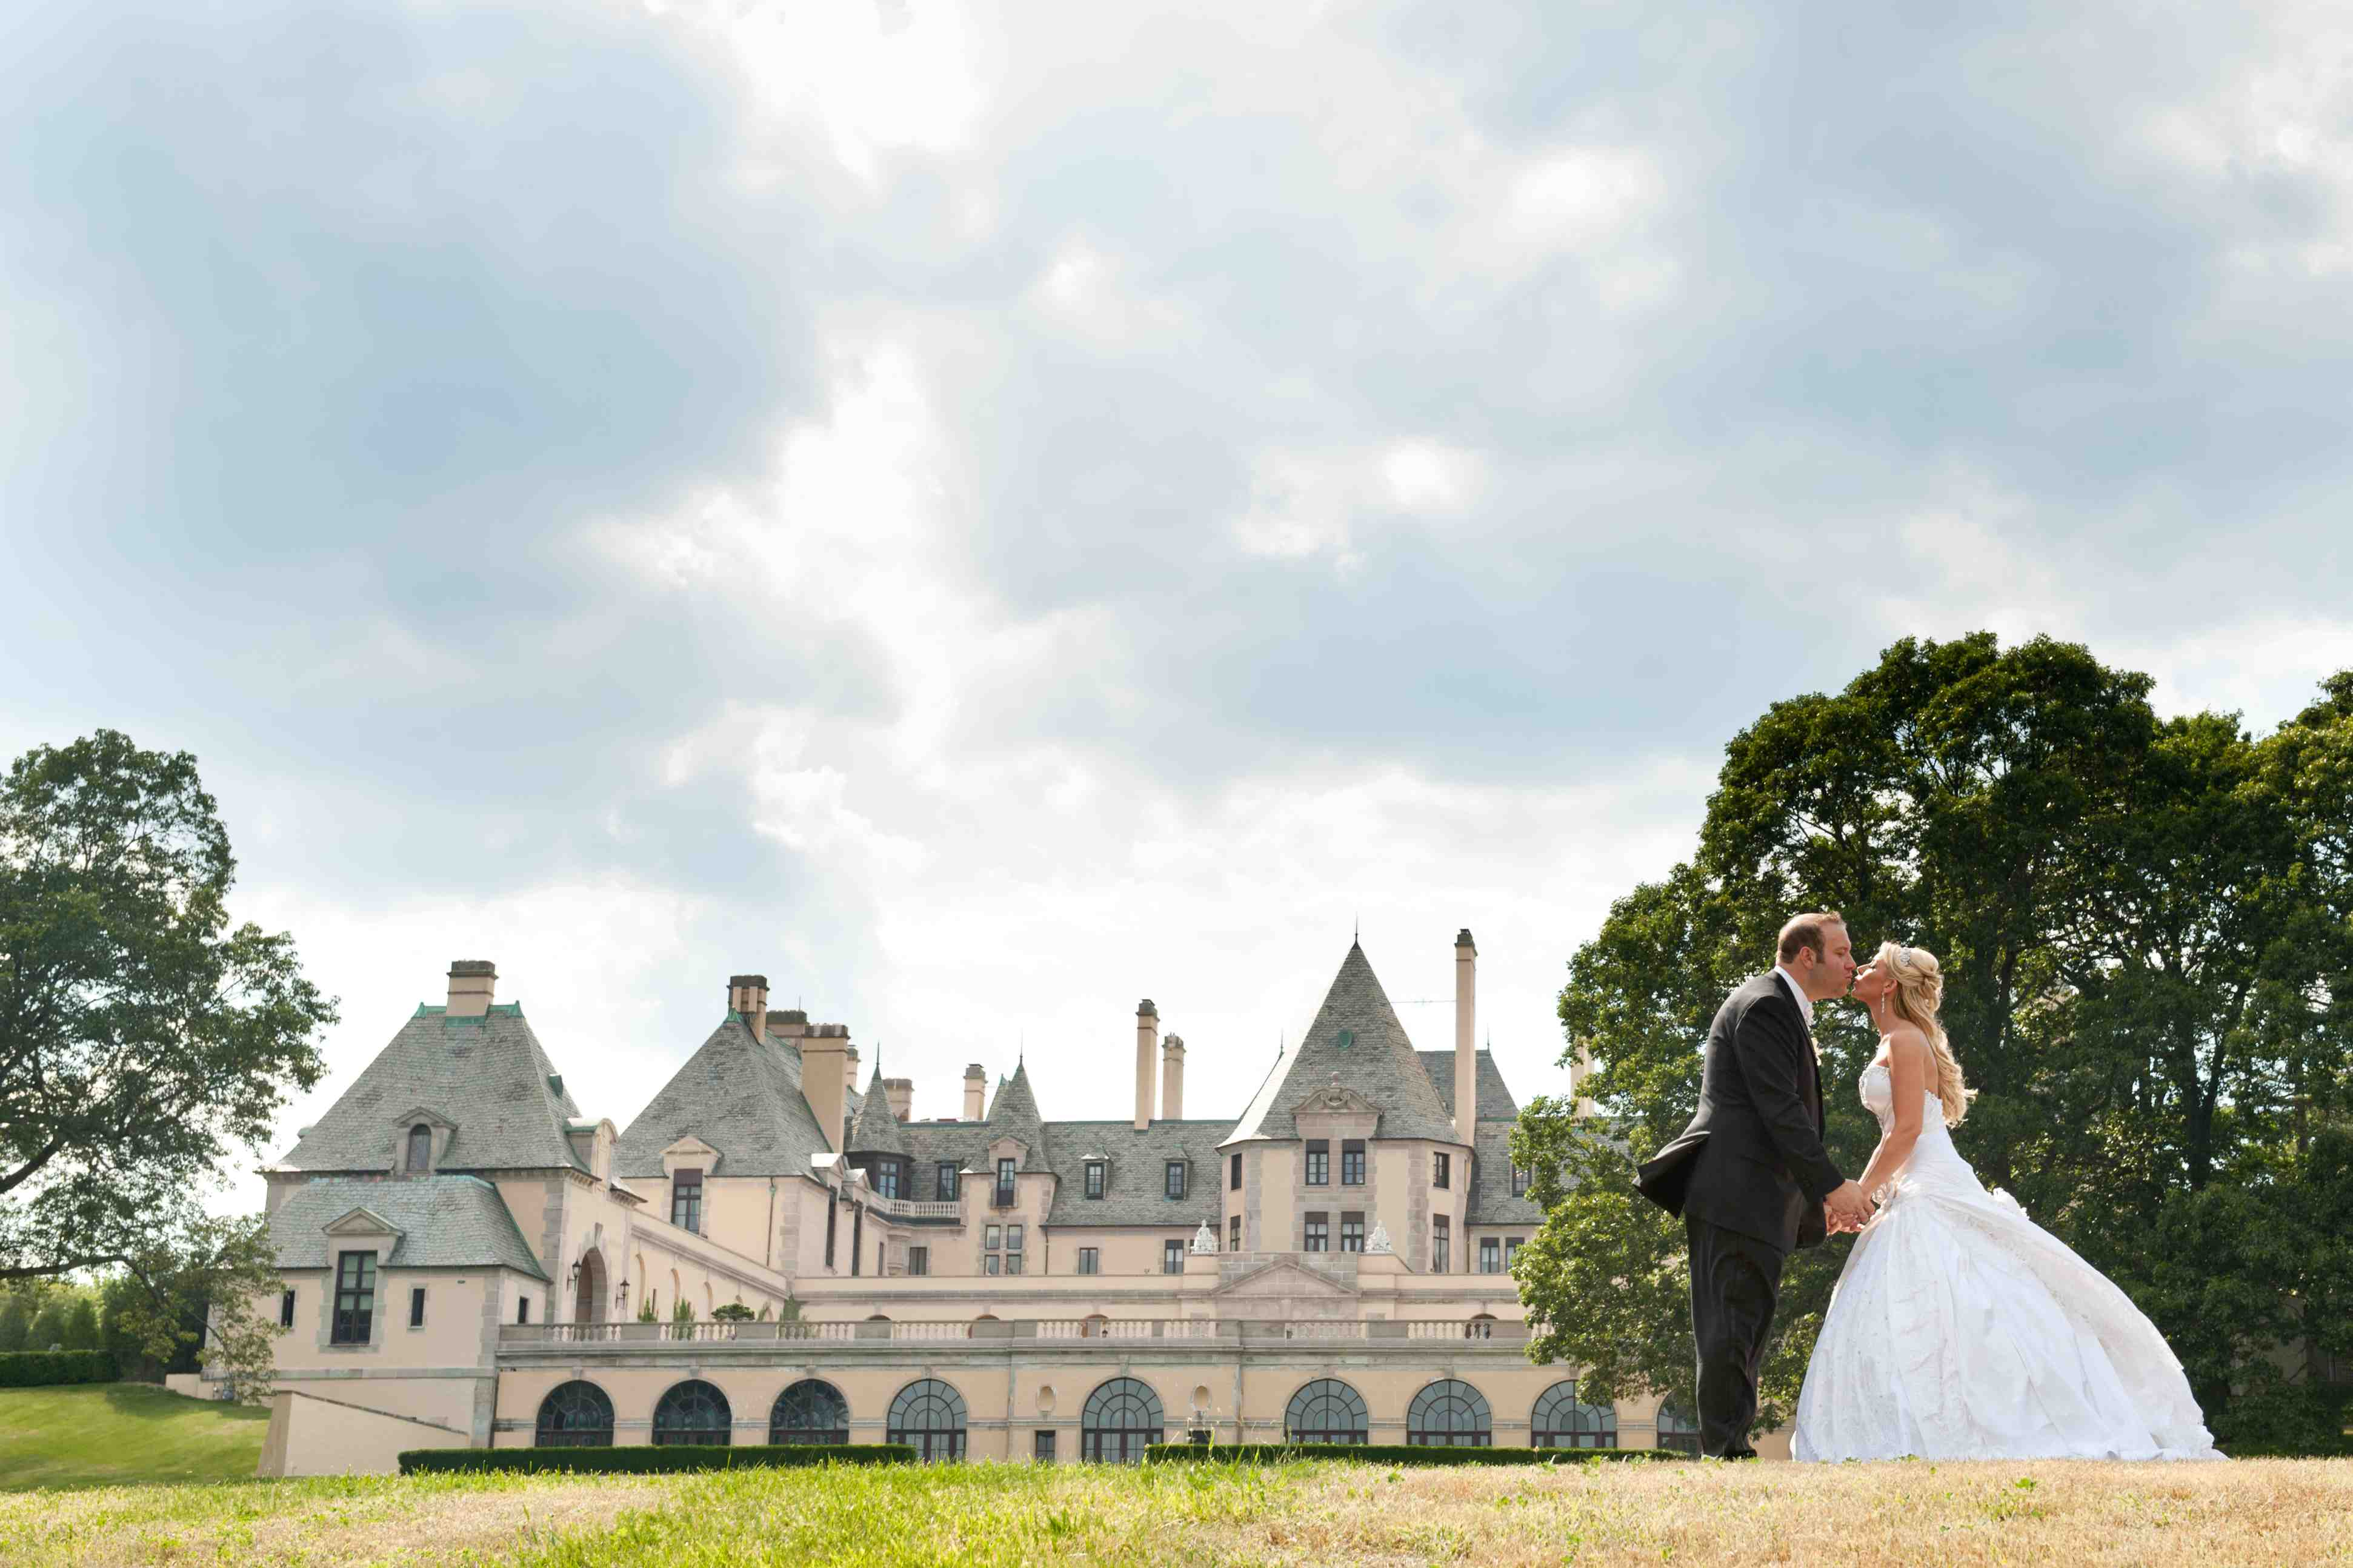 Bride and groom kiss wedding portrait oheka castle at castle wedding venue